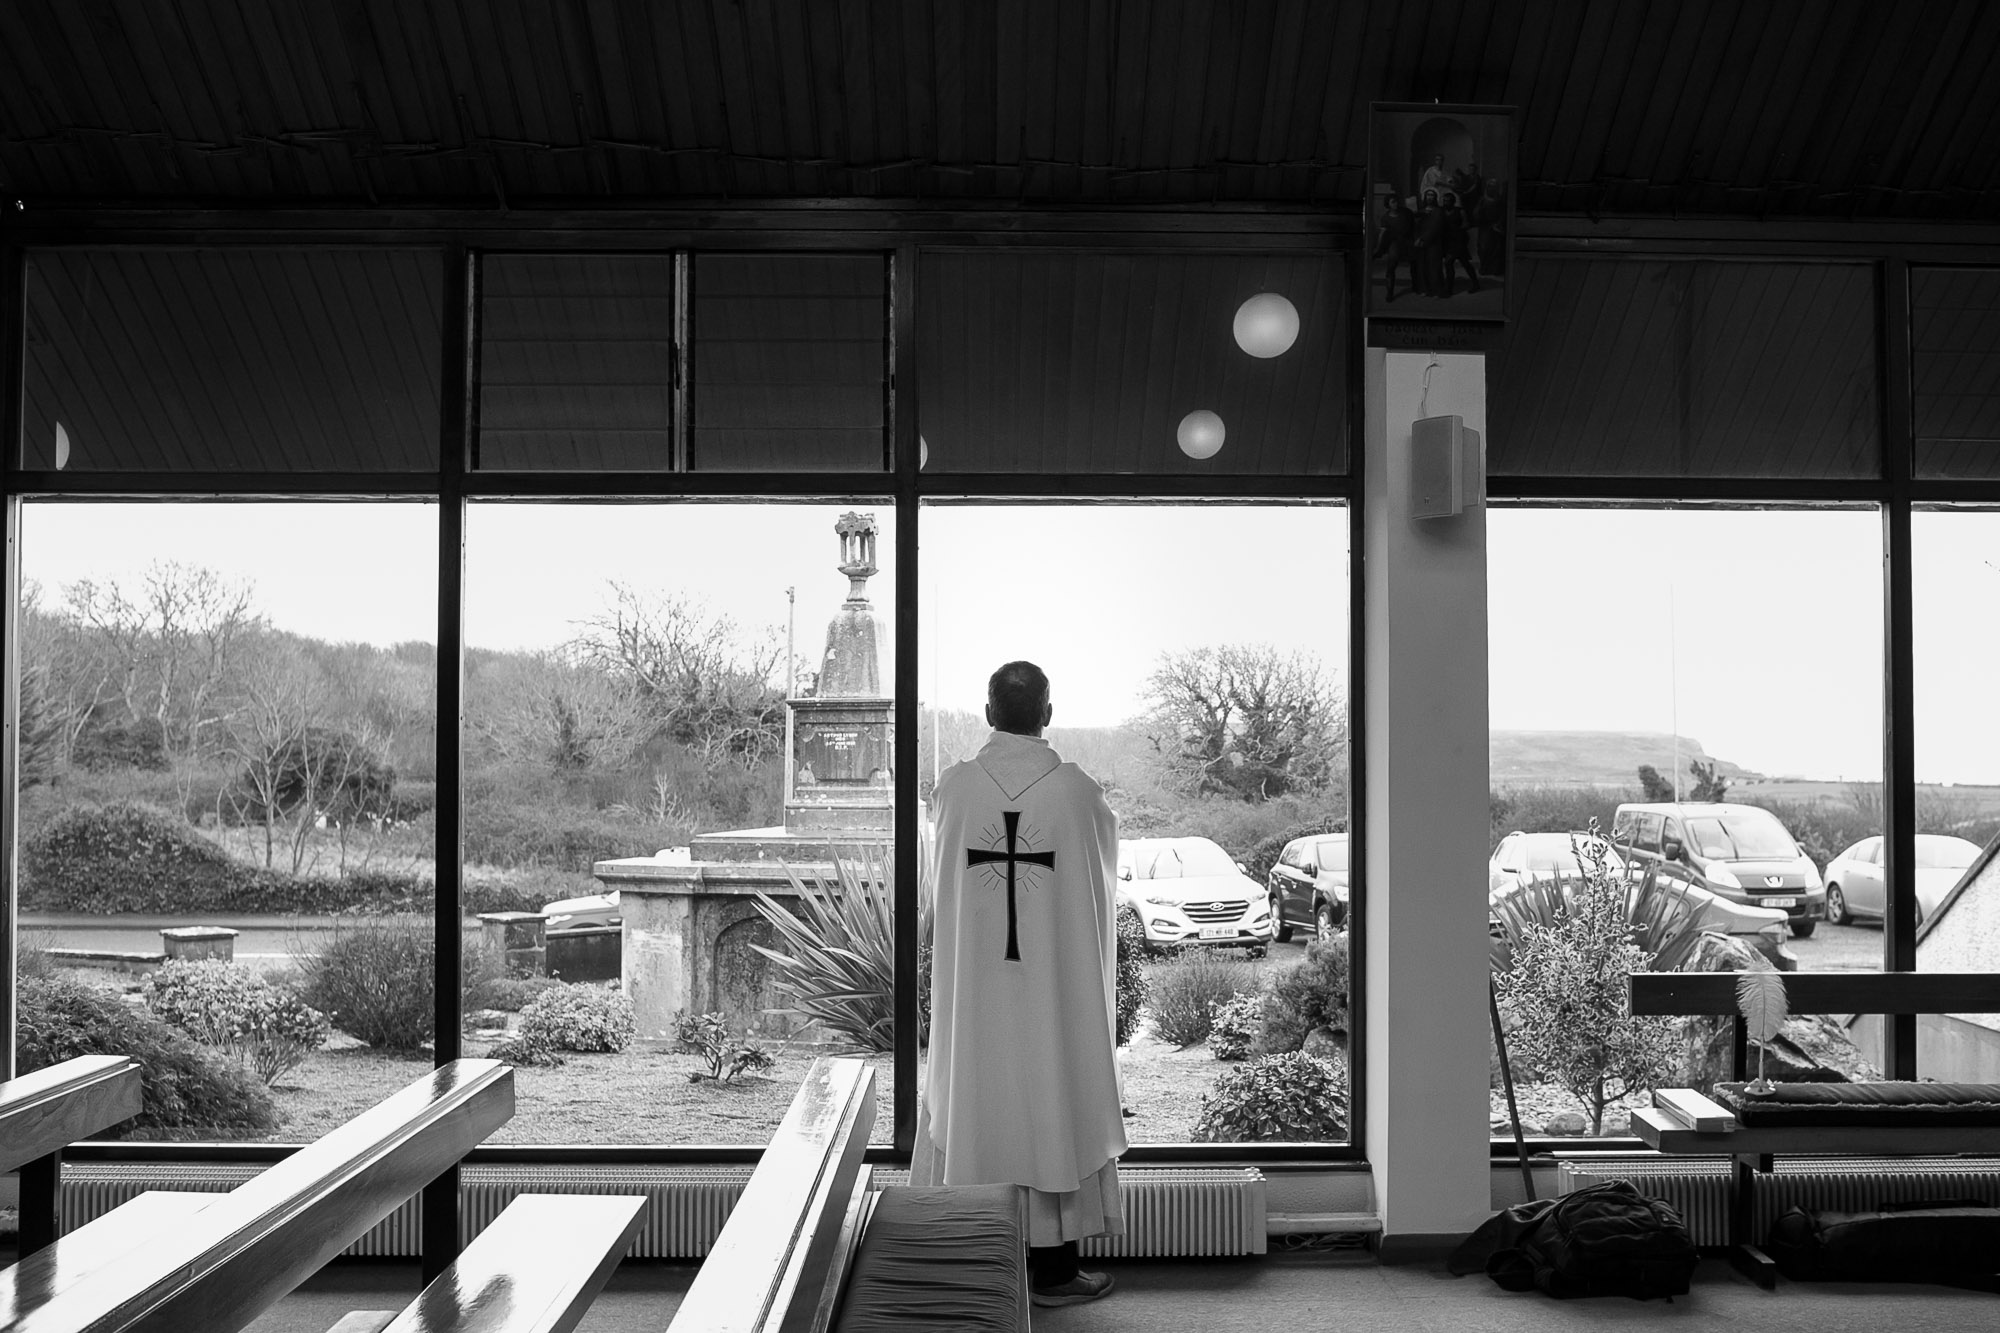 Priest looking out window